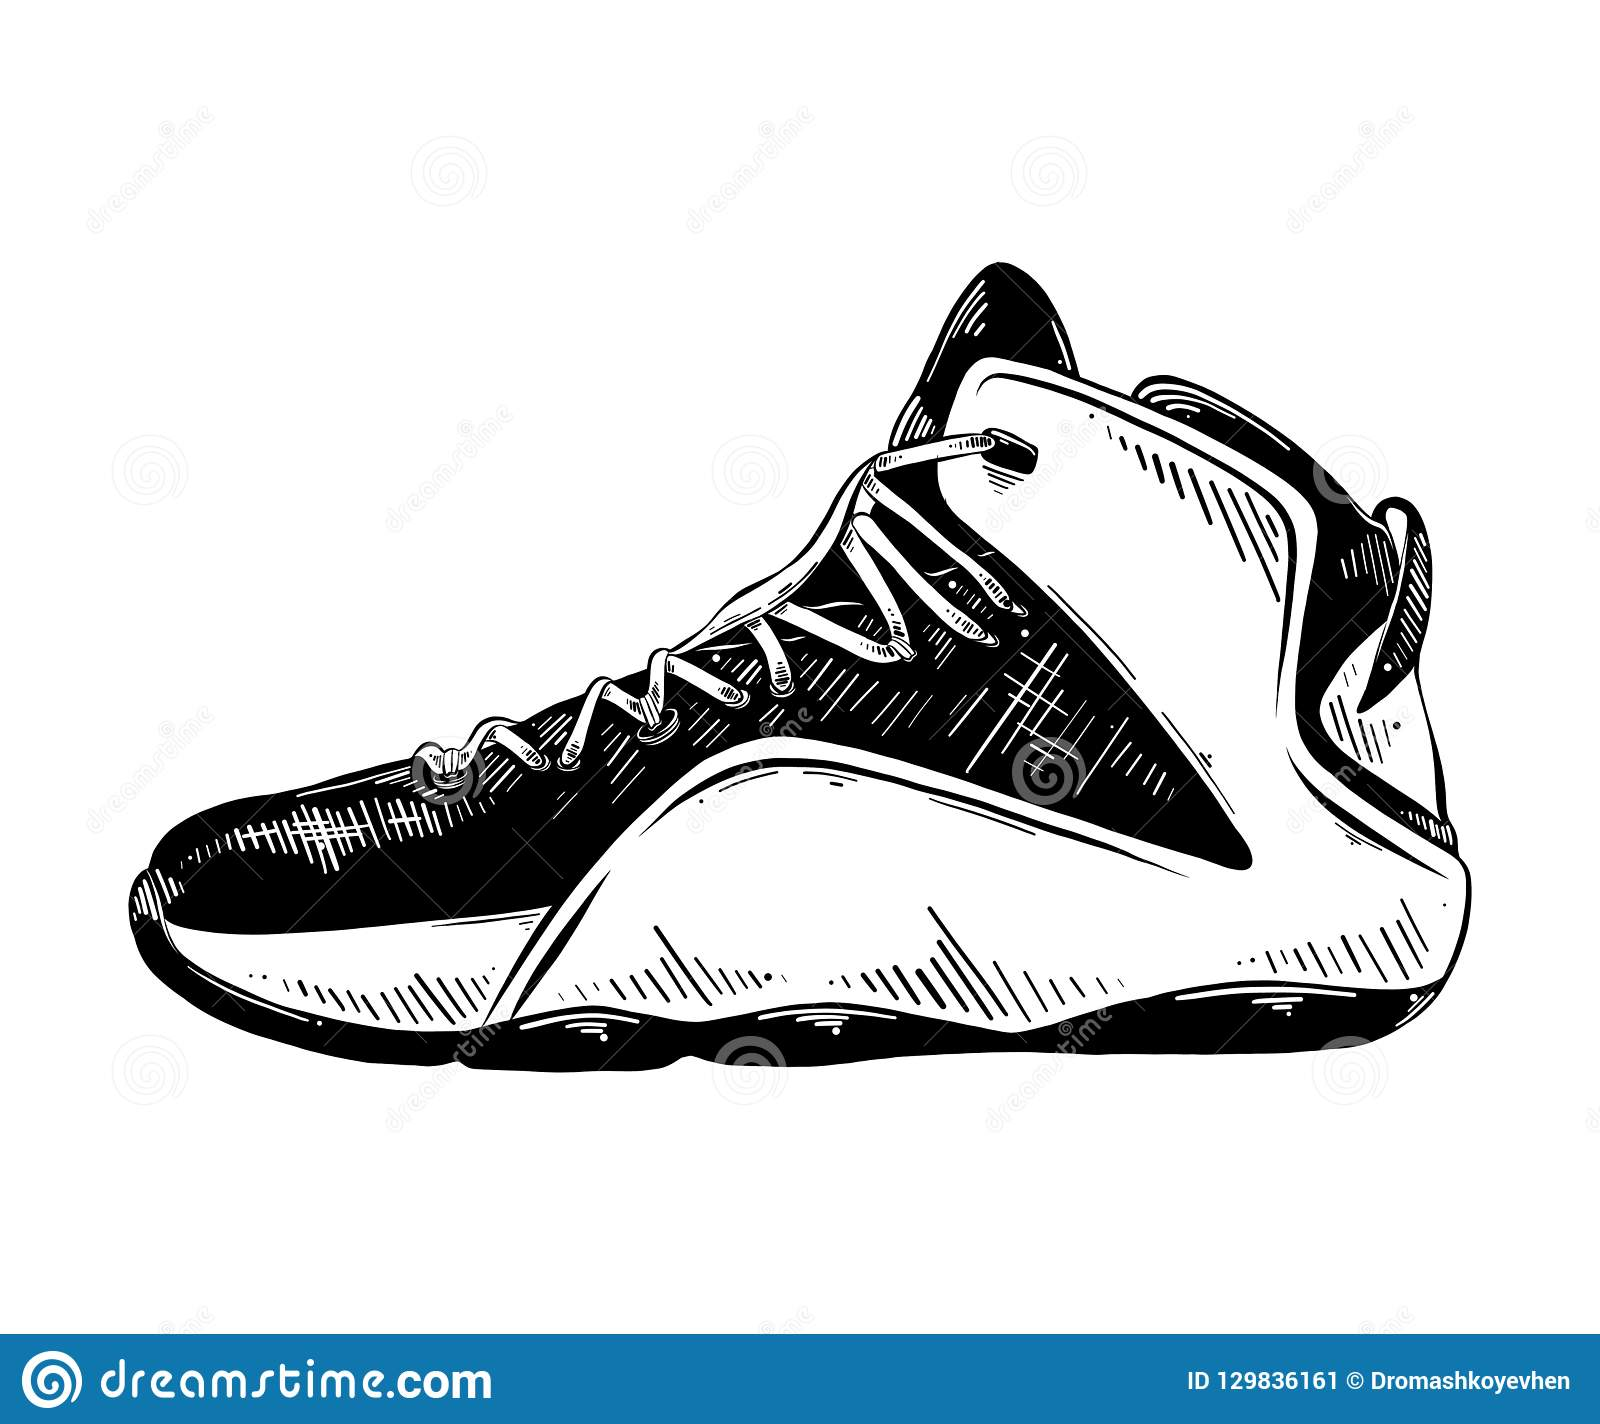 Hand Drawn Sketch Of Basketball Sneaker In Black Isolated On